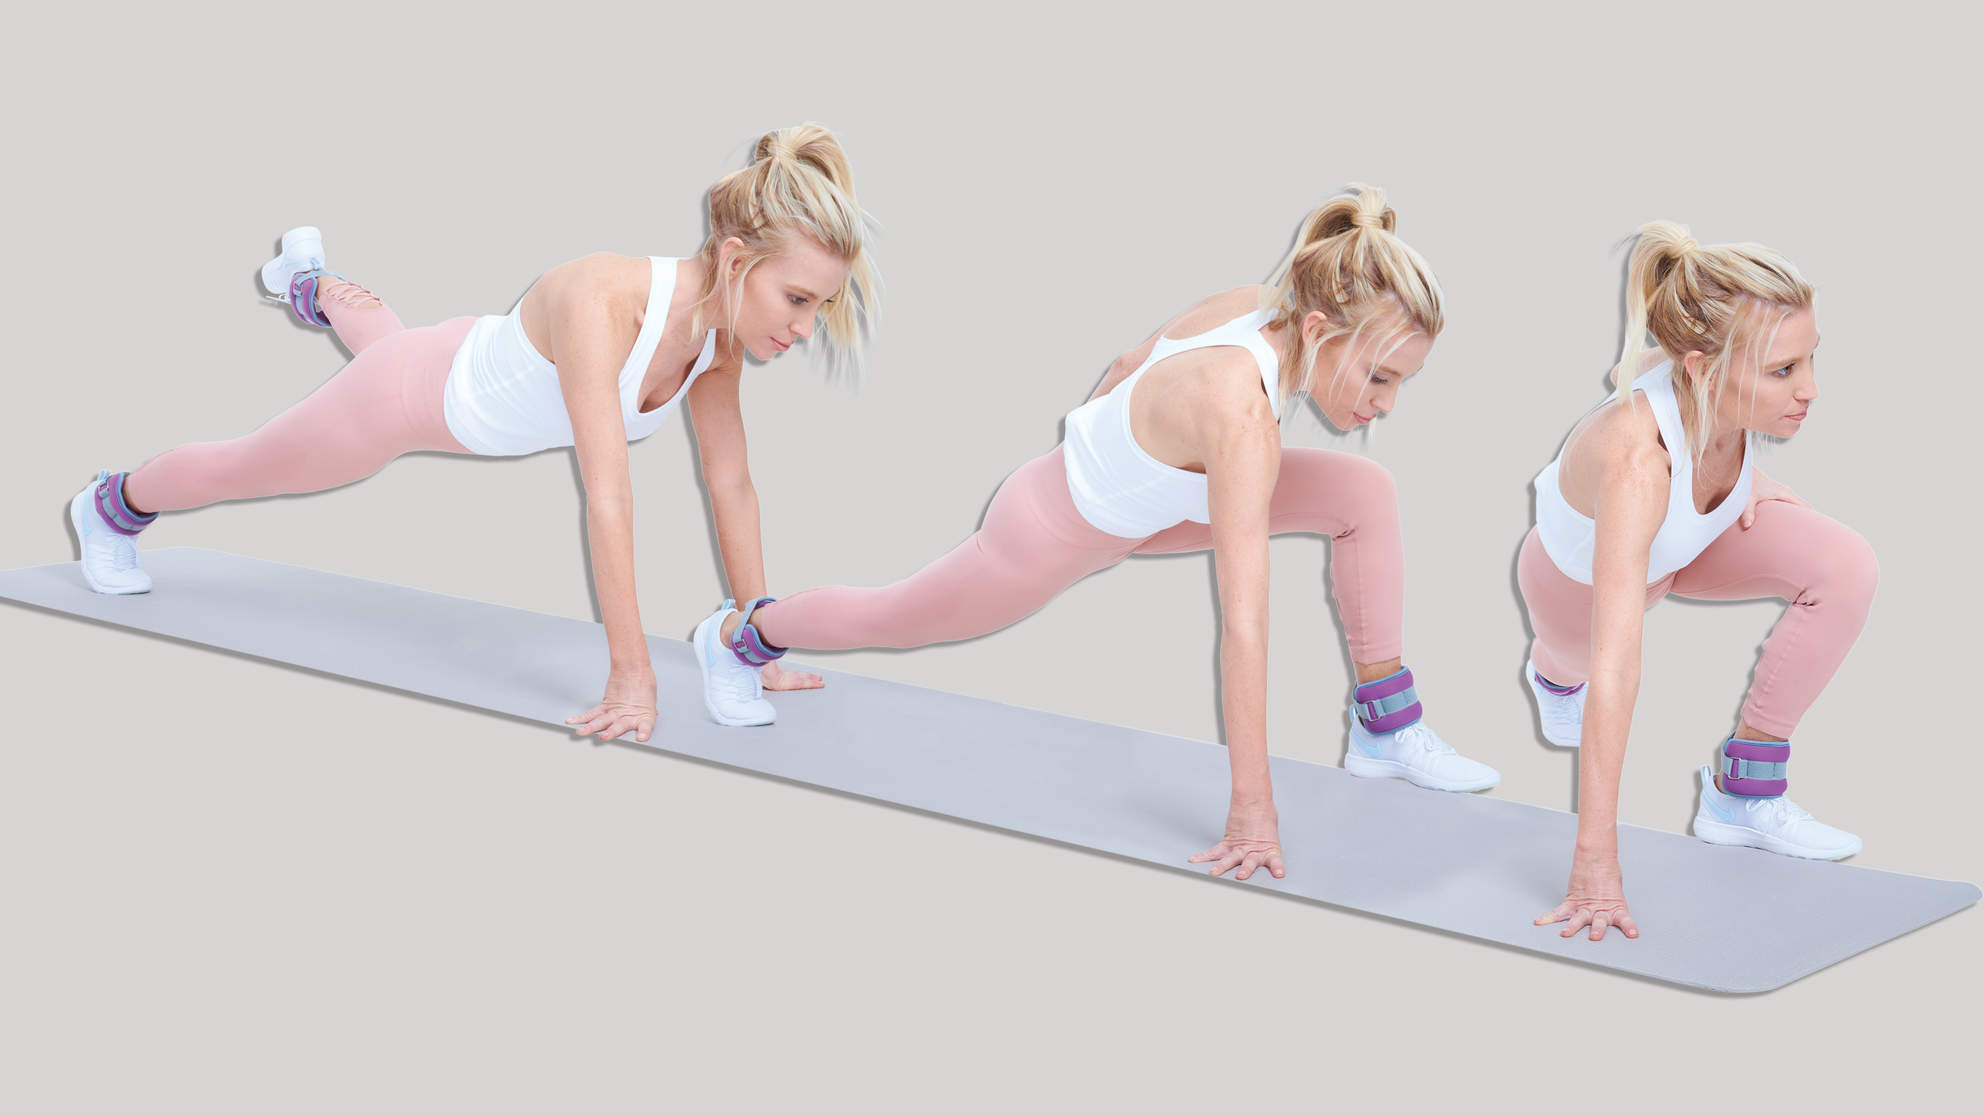 tracy-anderson-may-corssed-lunge-plank